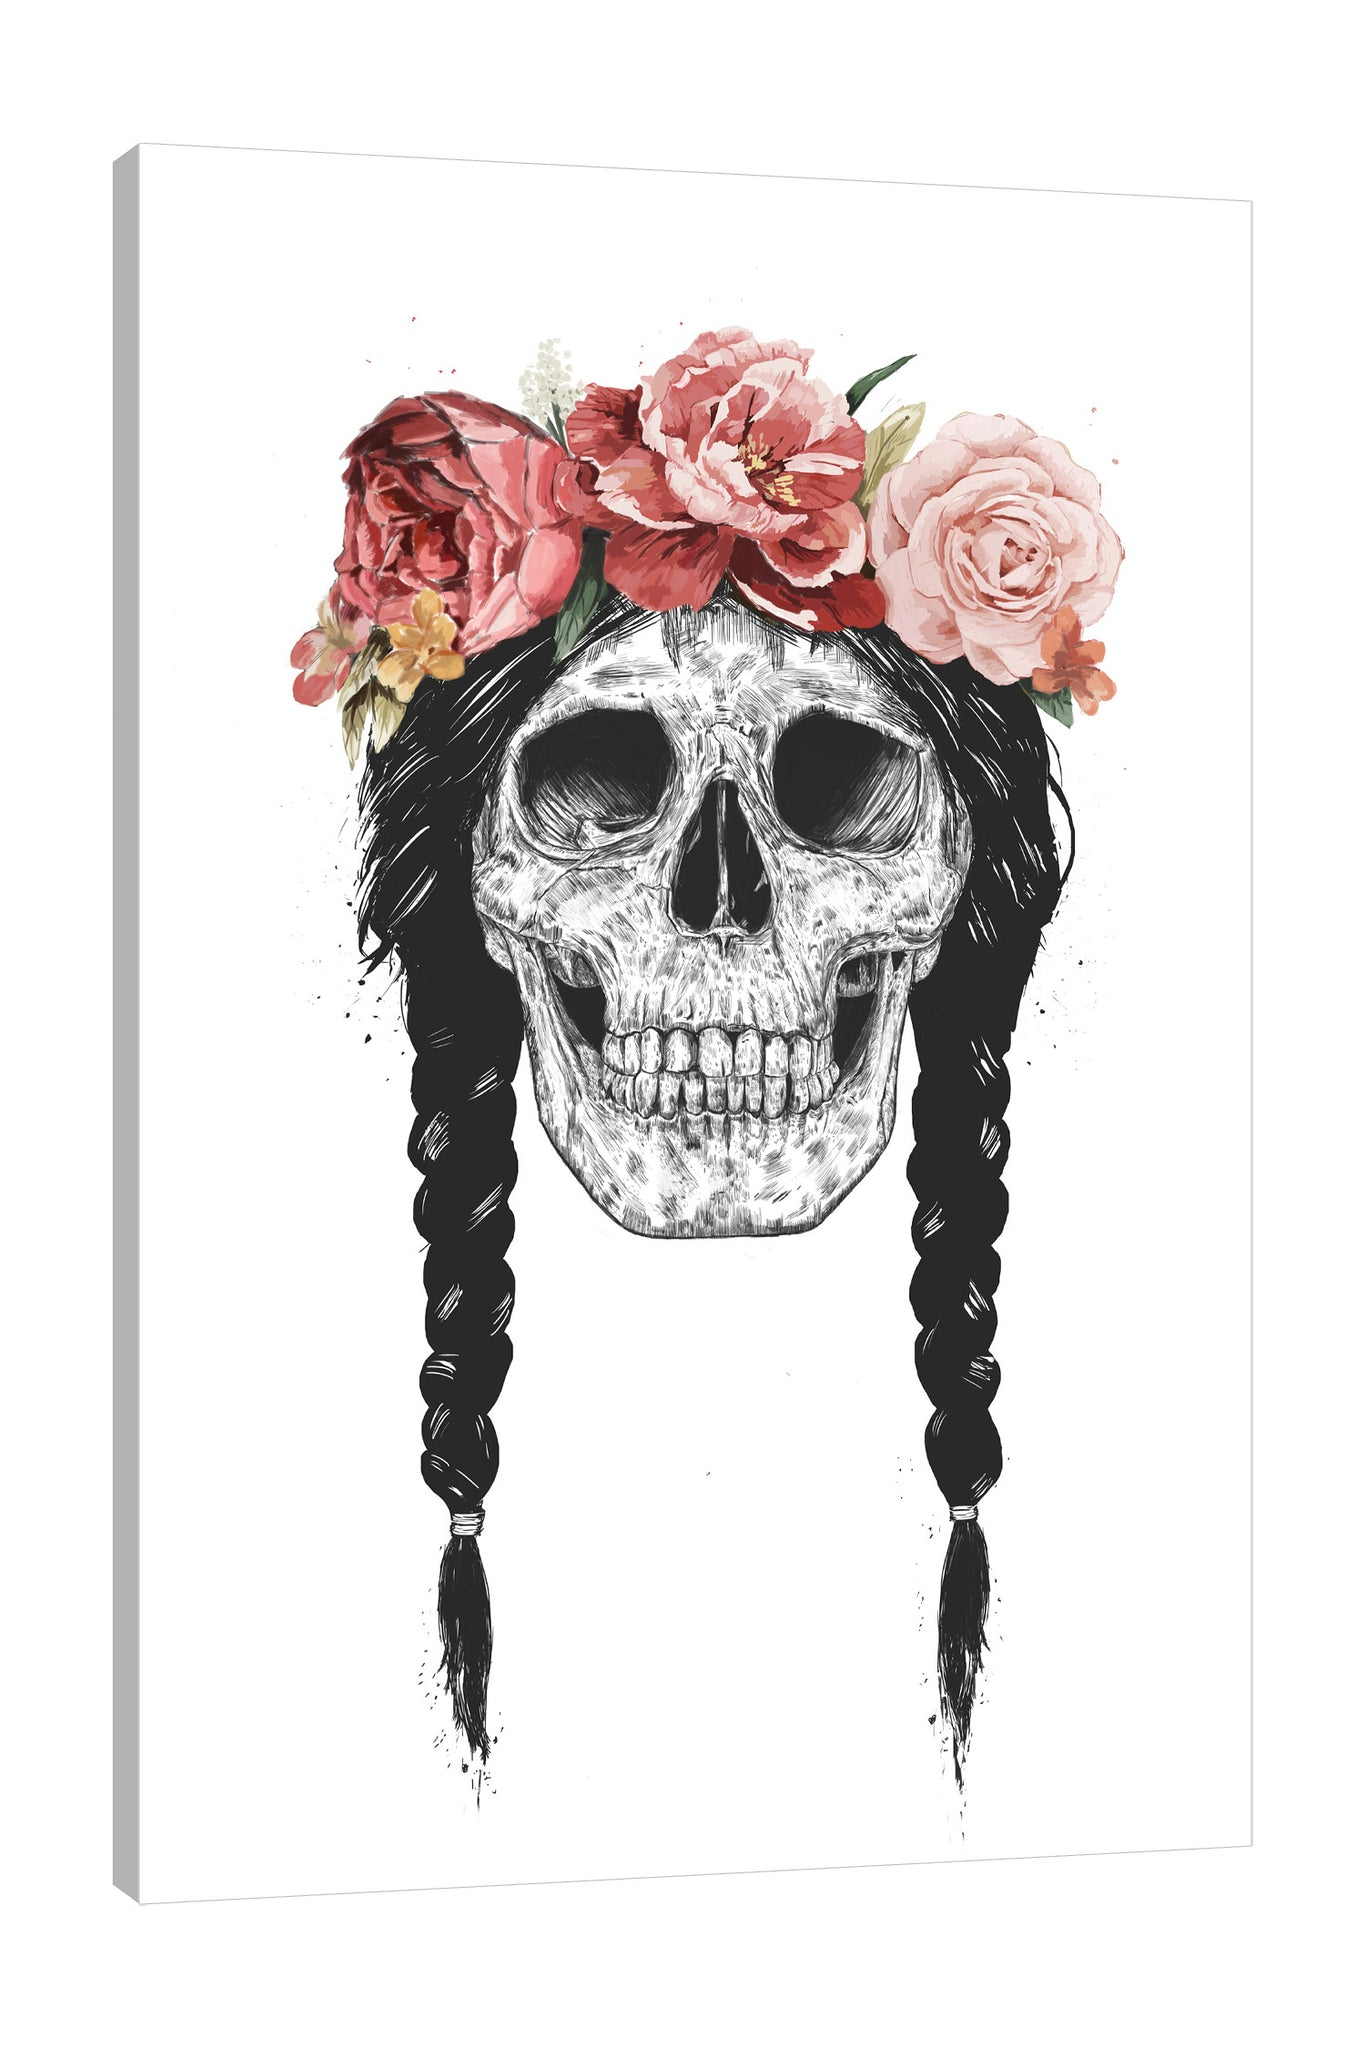 Balazs-Solti,Modern & Contemporary,People,Floral & Botanical,skull,skulls,bones,bone,hair,braids,braid,florals,floral,flower,flowers,leaves,leaf,Red,Mist Gray,Blue,Ivory White,Gray